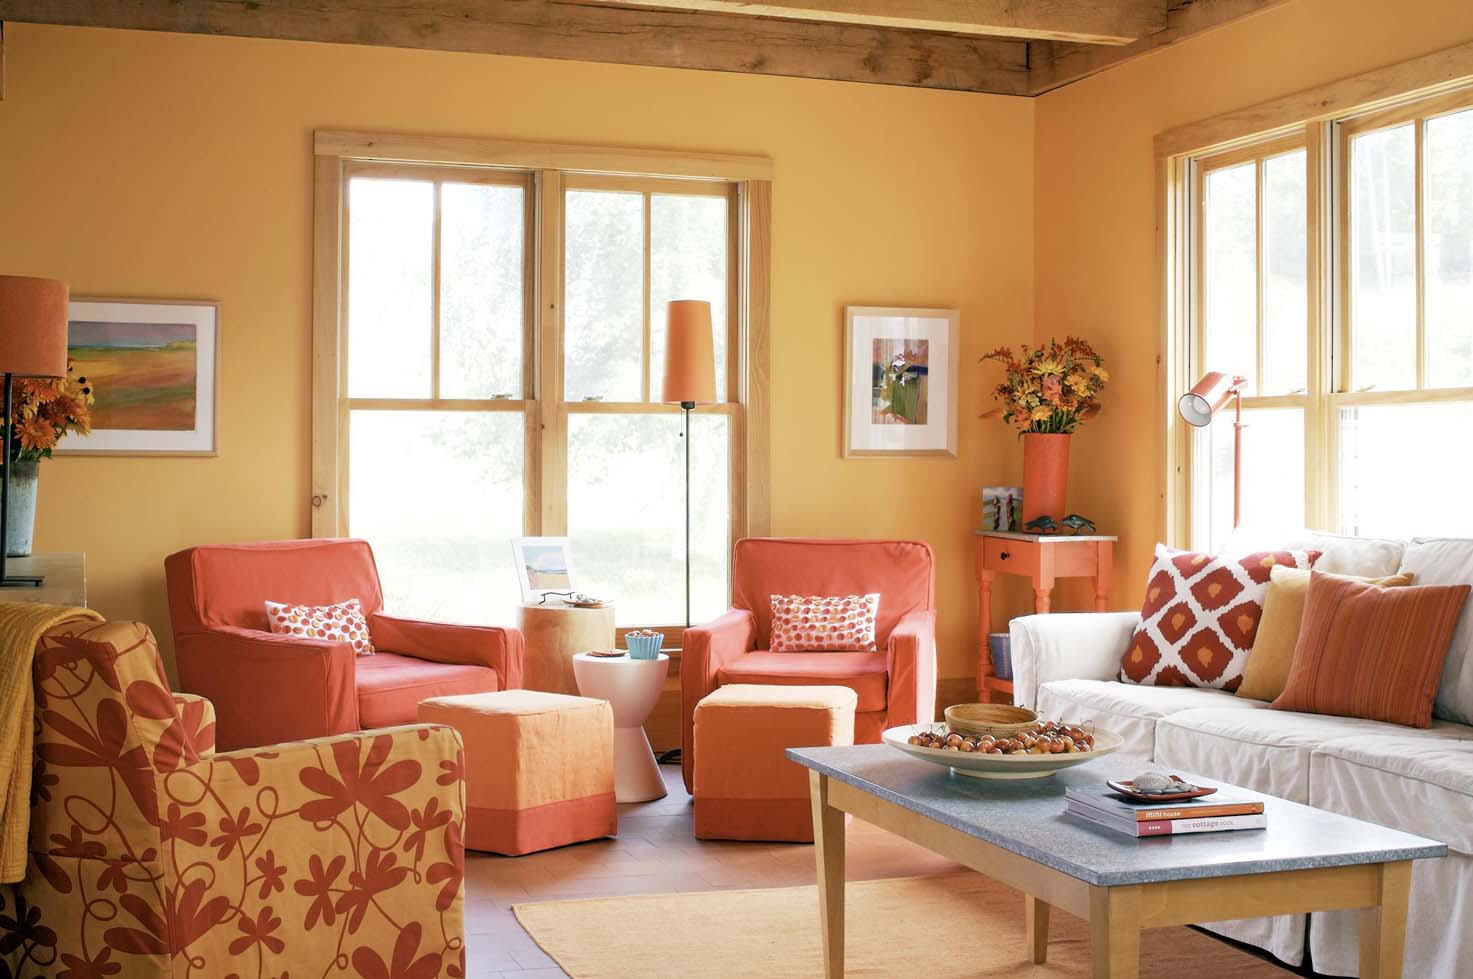 10 salas color naranja salas con estilo - Tendencias en colores para interiores 2015 ...